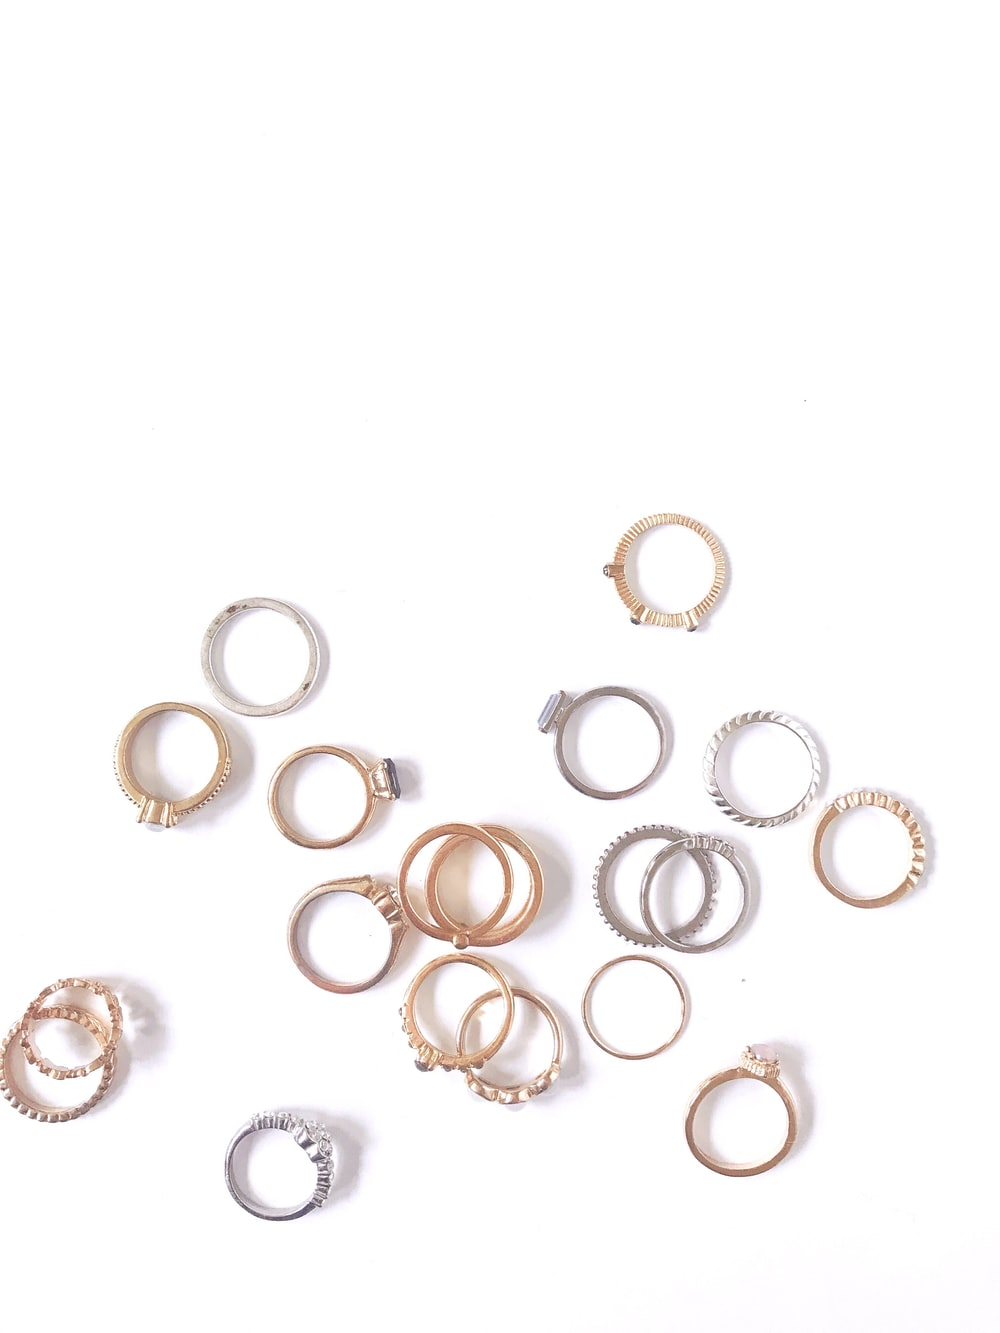 silver and gold rings on white surface